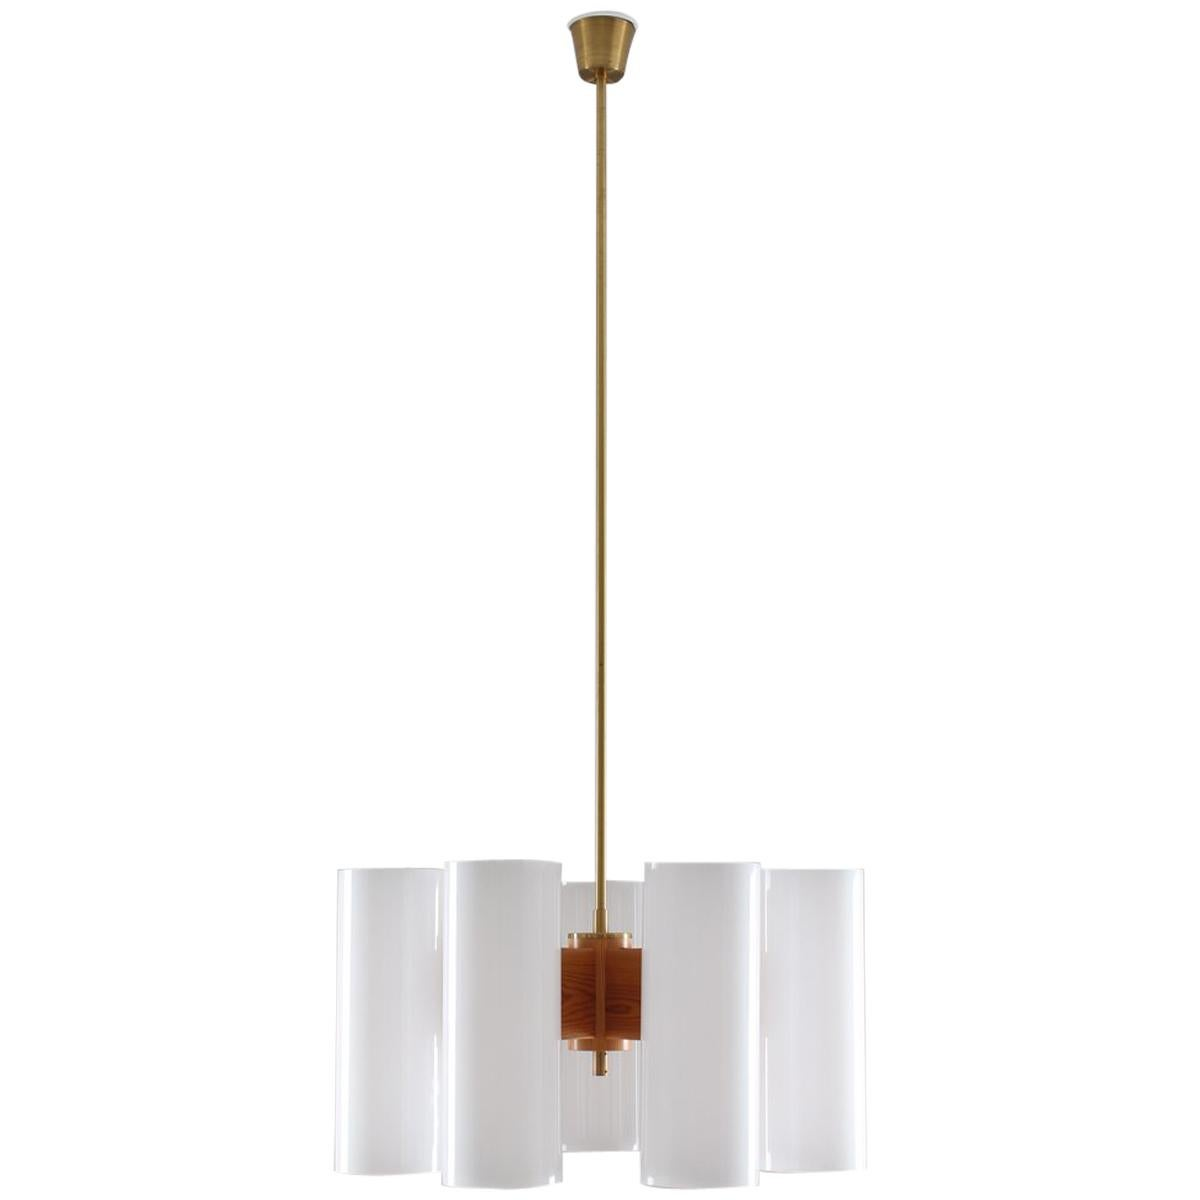 Large Swedish Midcentury Chandeliers in Acrylic, Pine and Brass by Luxus, 1960s